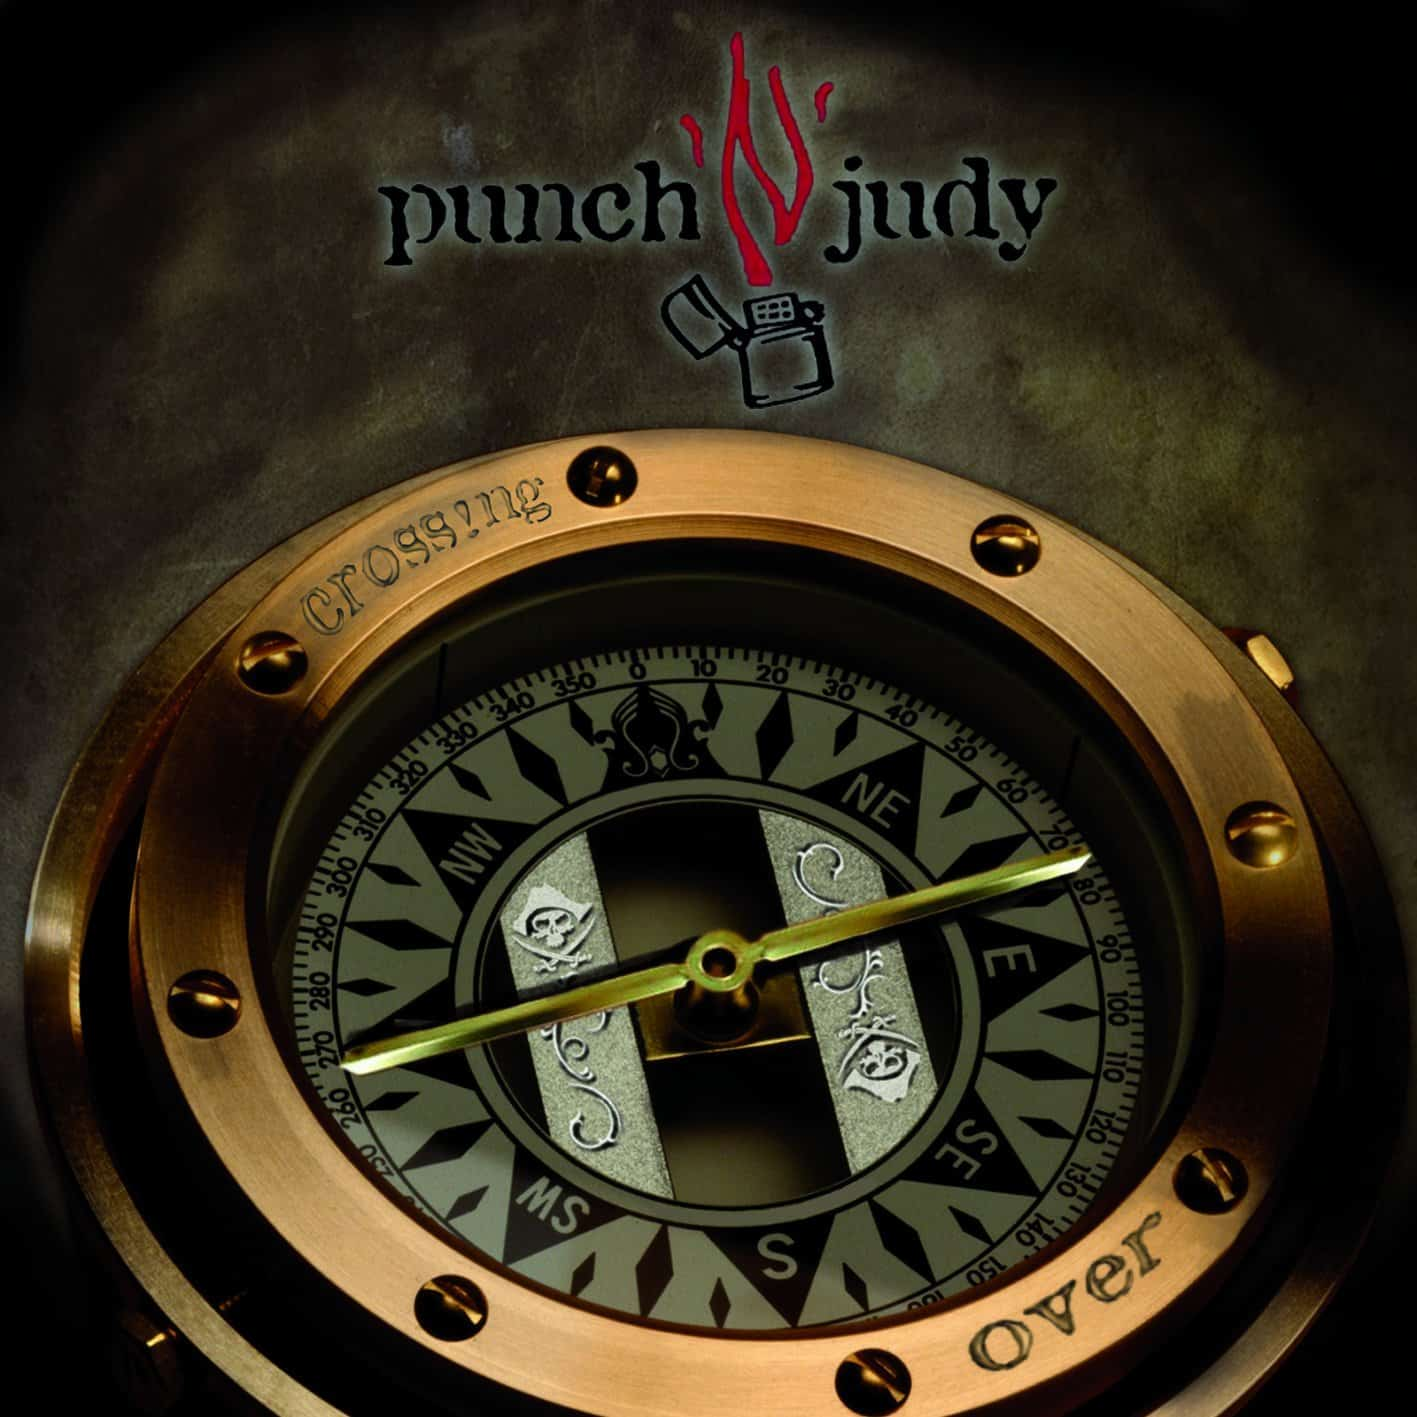 "Cover des Punch'n'judy Albumgs "" Cross!ng Over"""